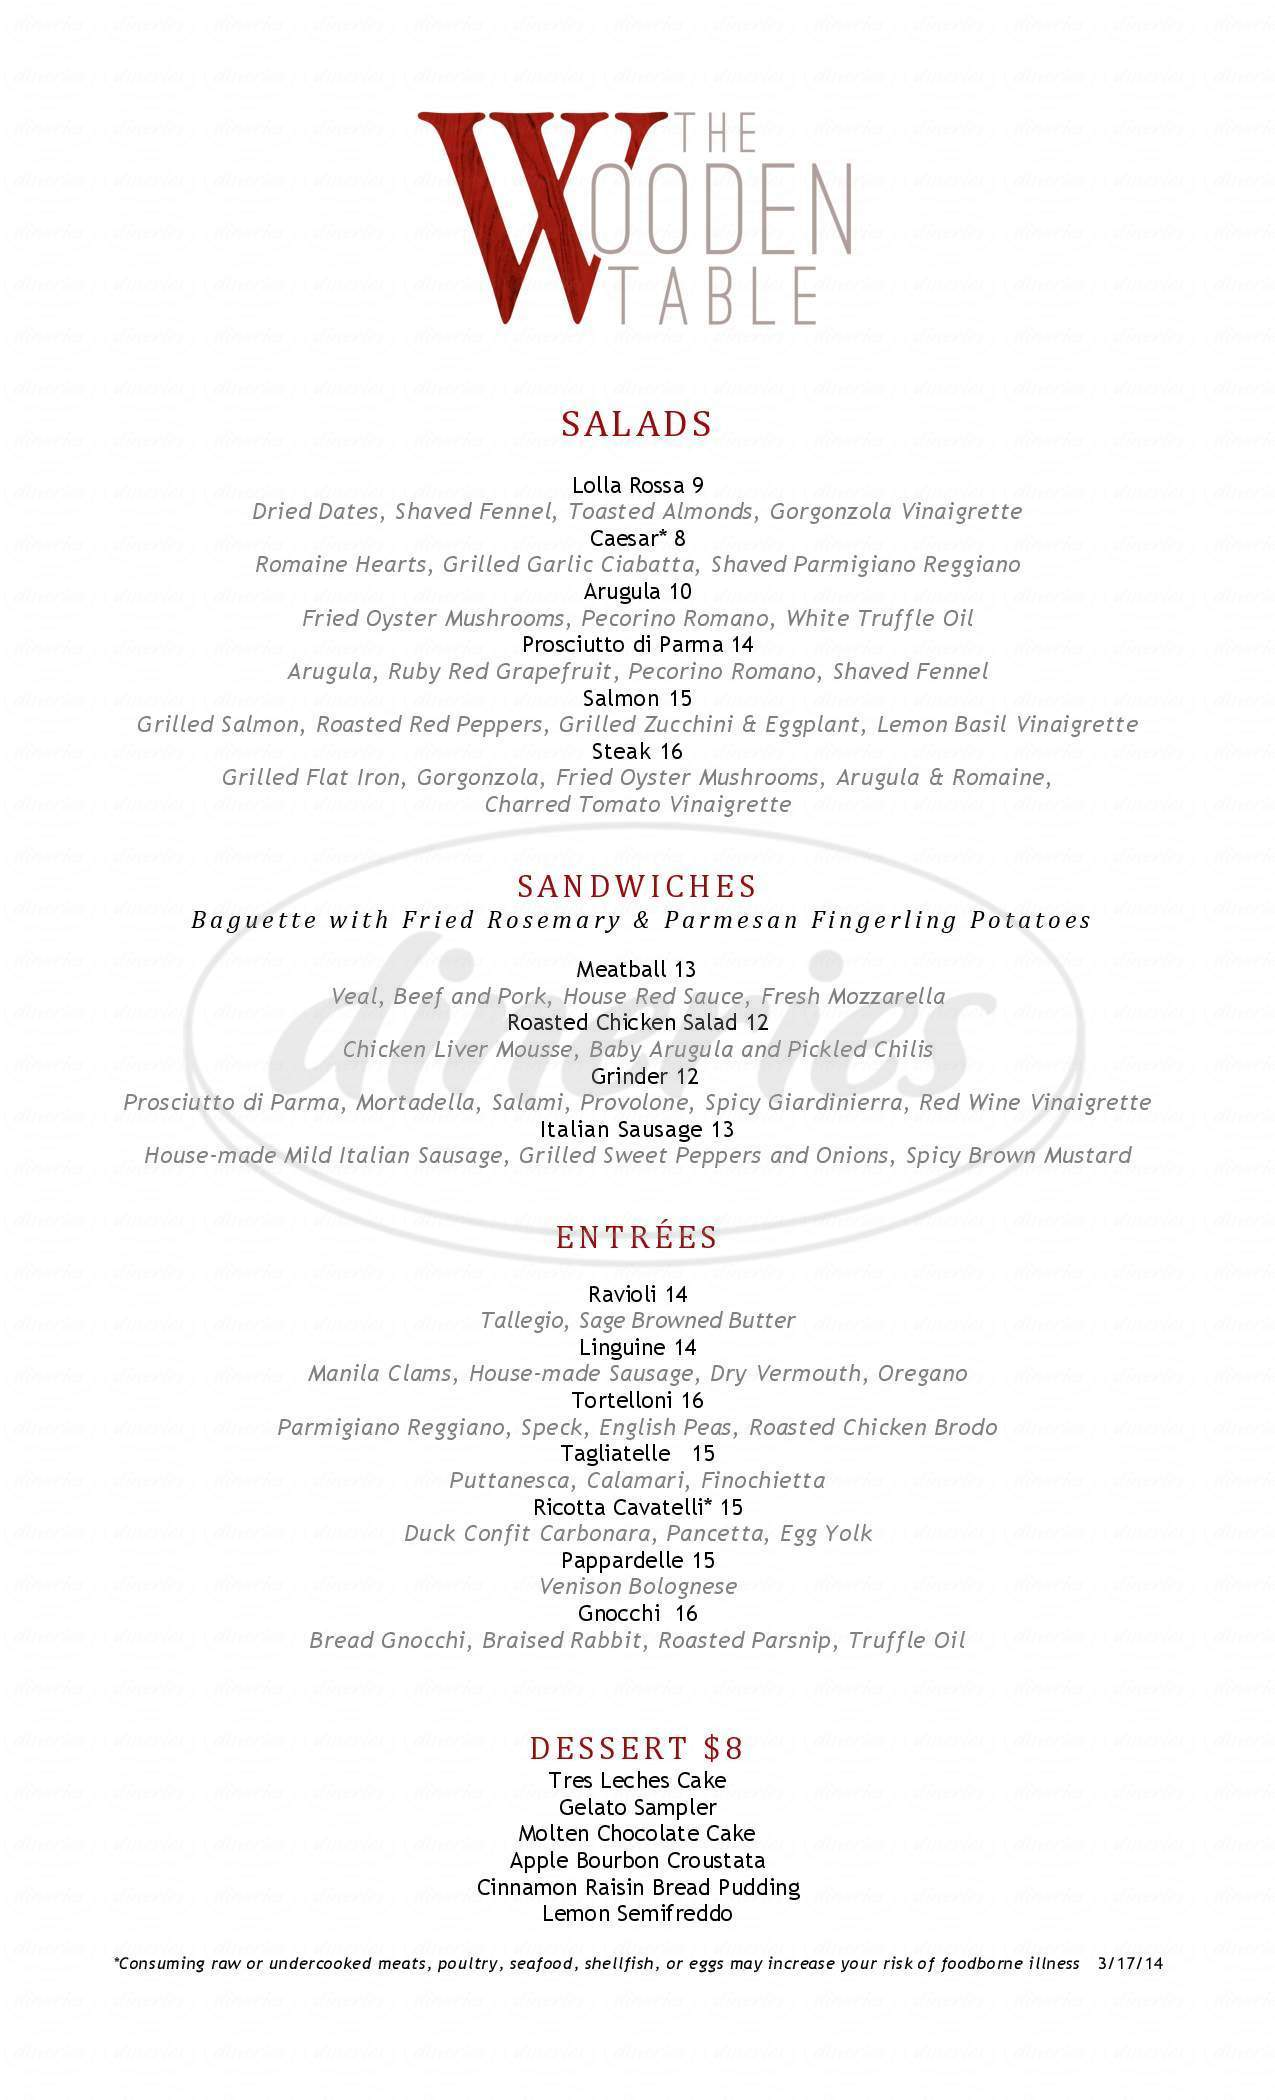 menu for The Wooden Table Restaurant